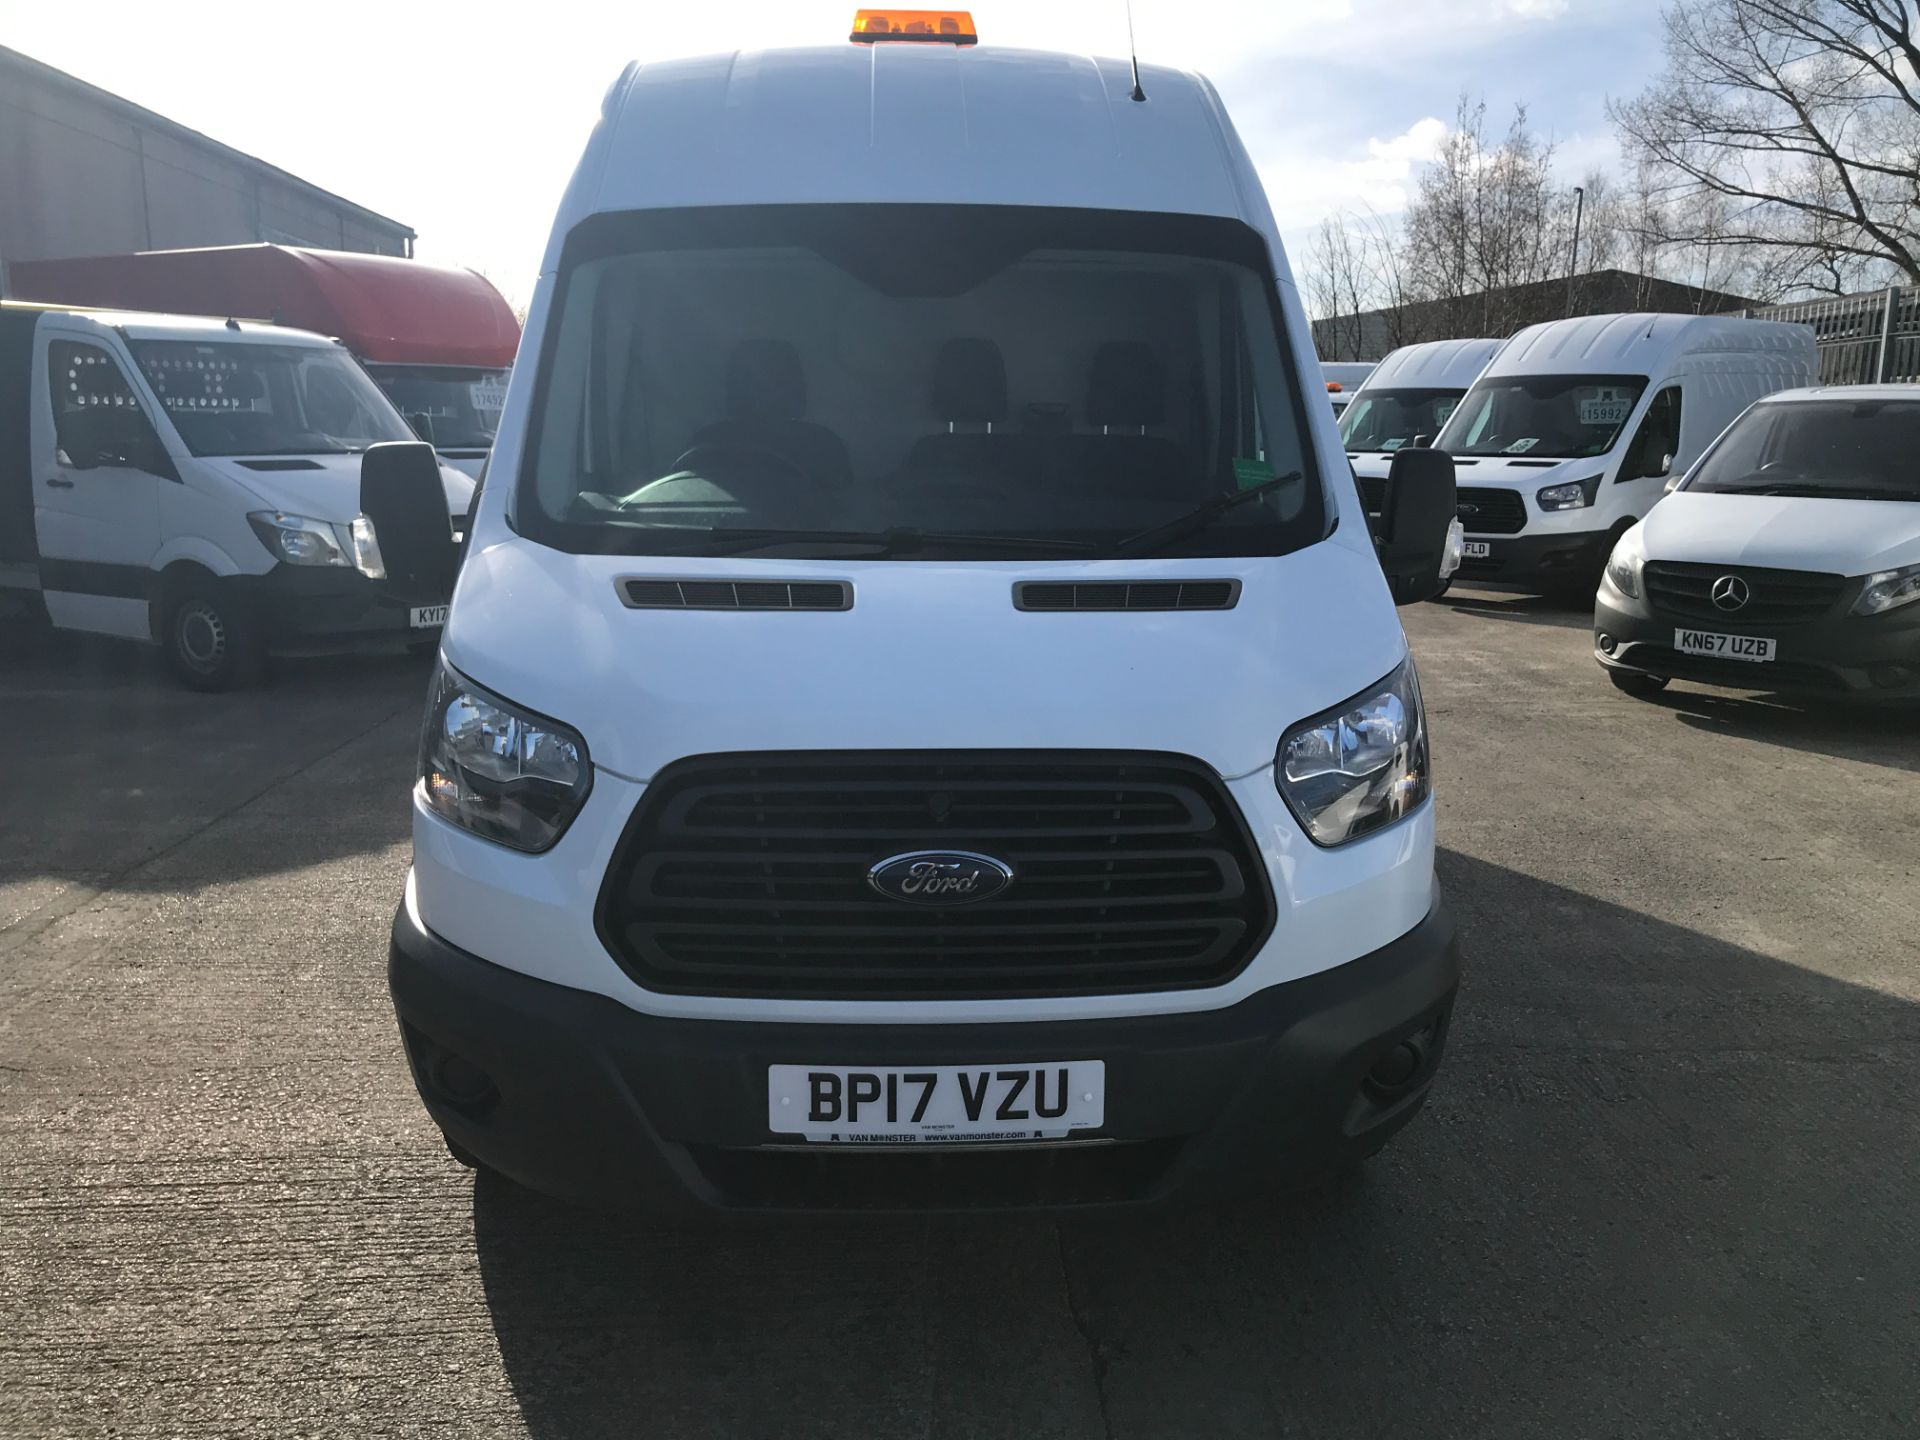 2017 Ford Transit T350 L3 H3 130PS EURO 6  (BP17VZU) Thumbnail 2